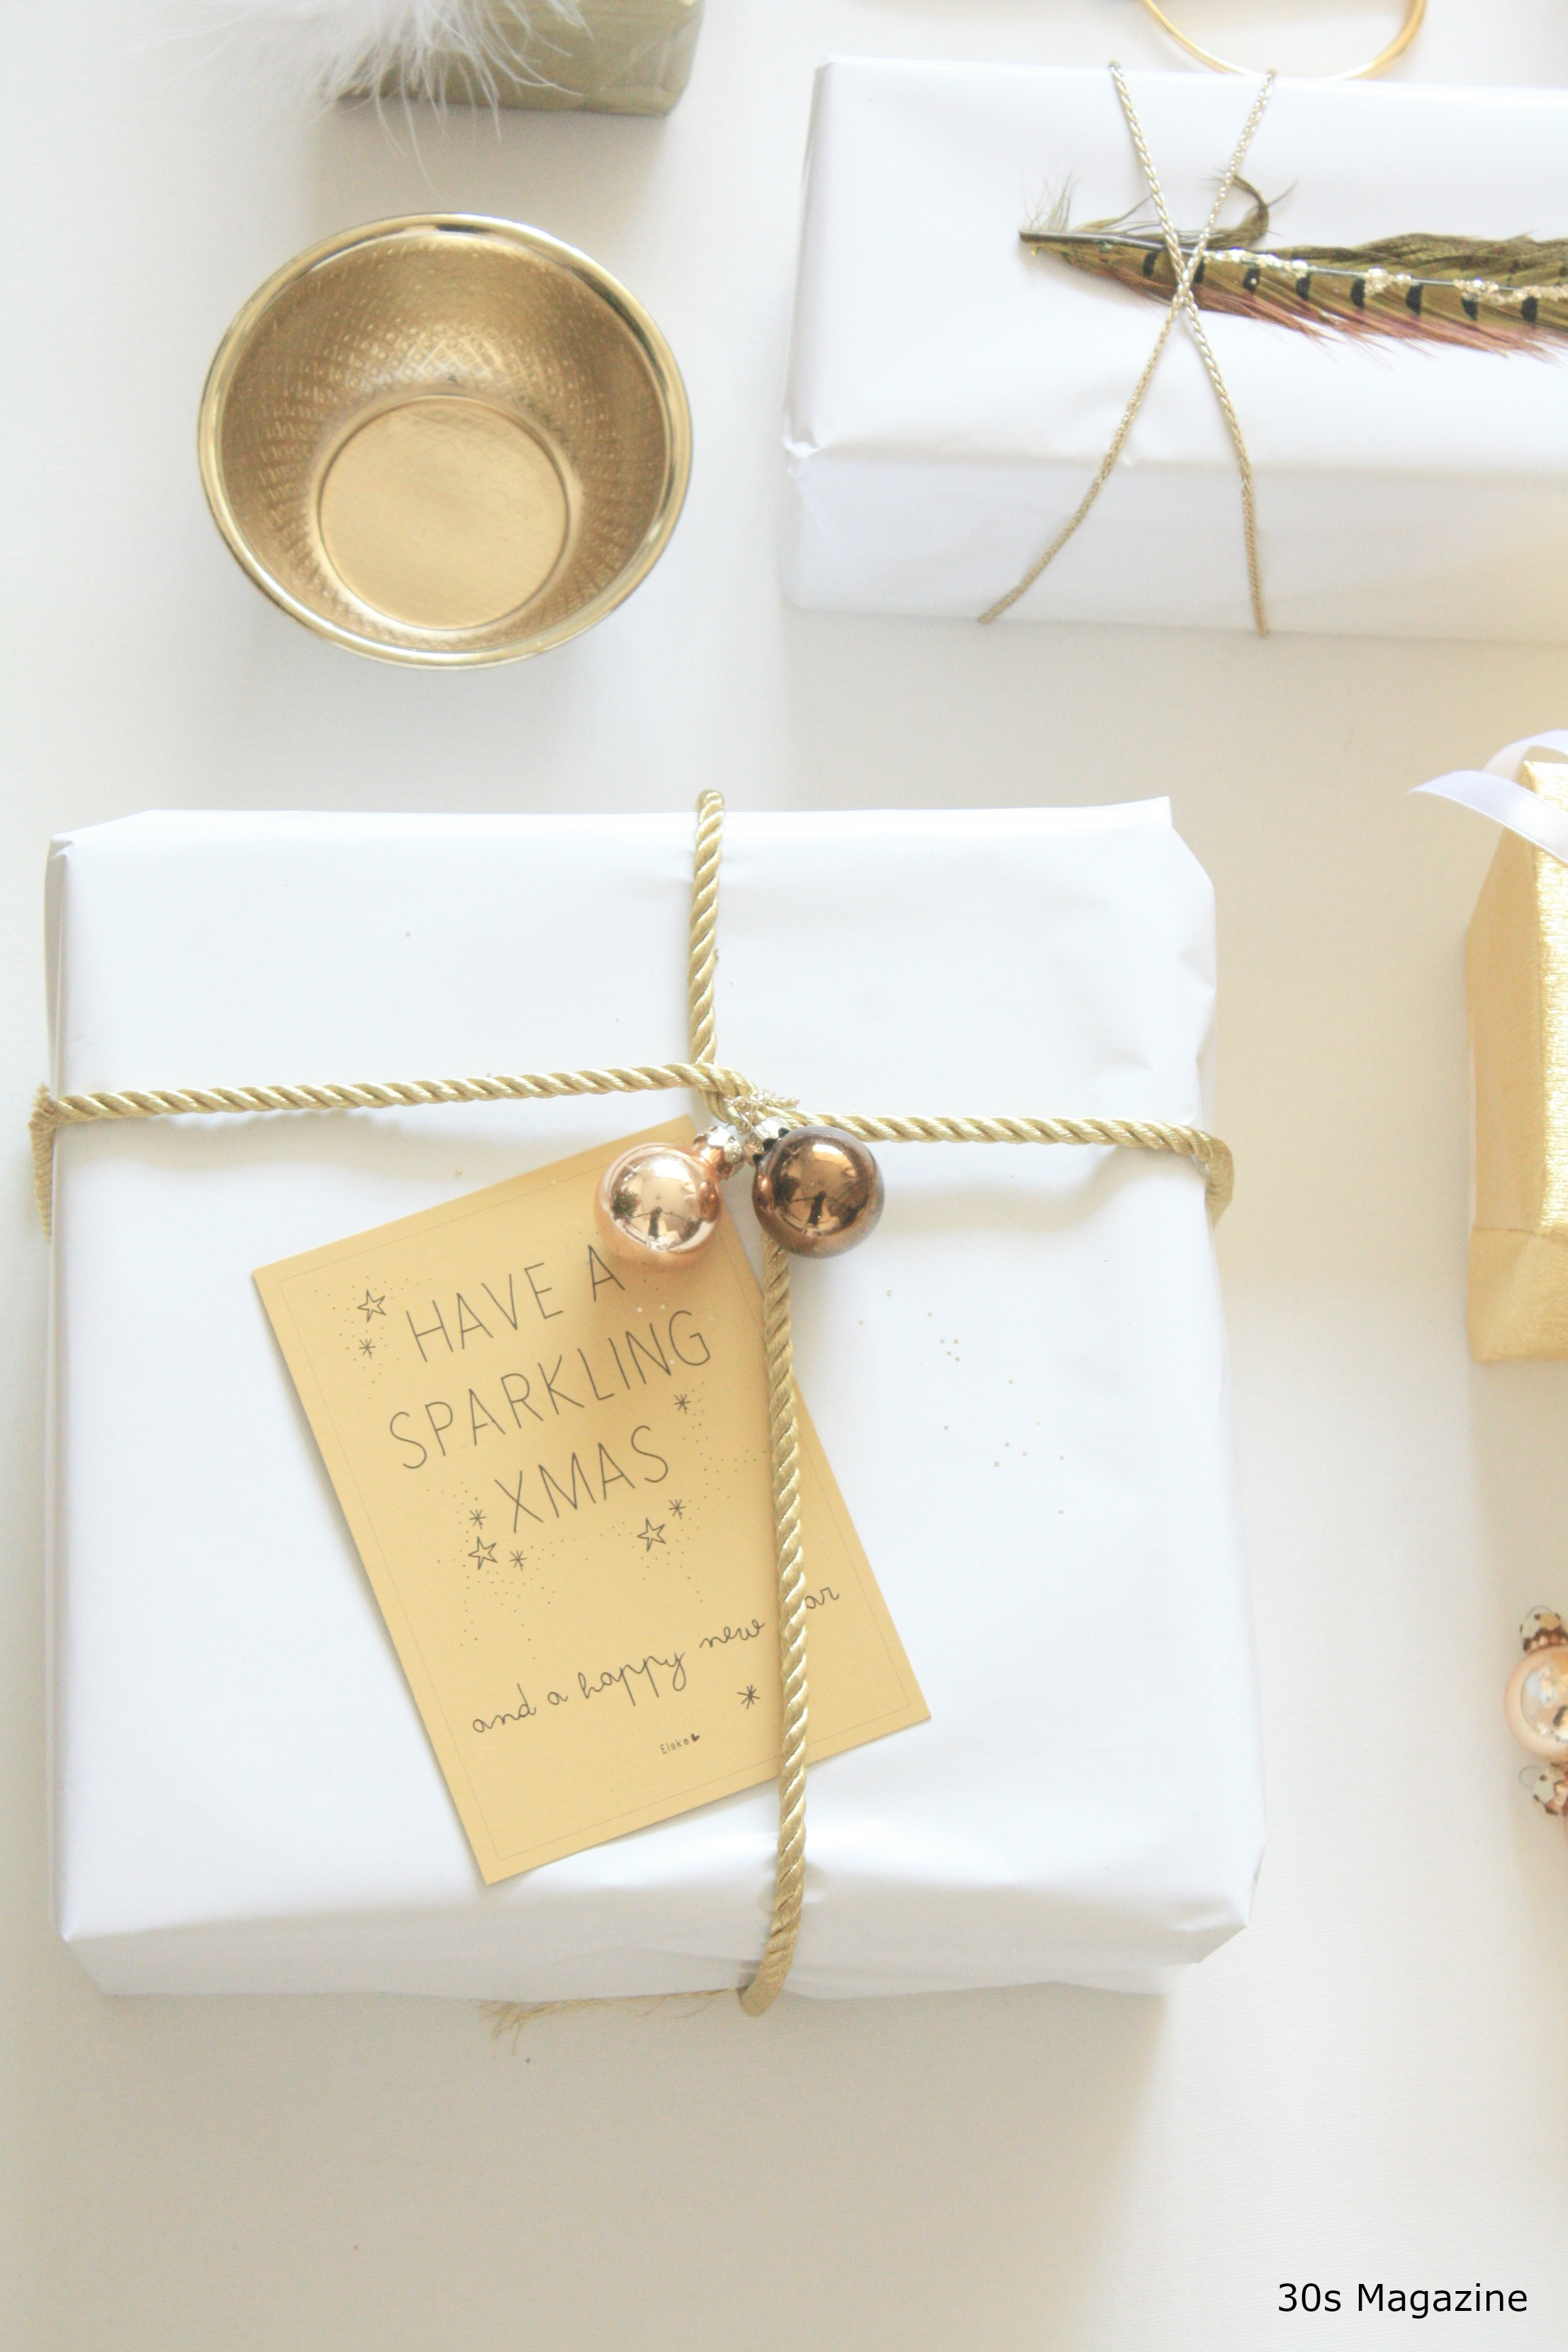 White And Gold Bedroom Chair: Gift Wrapping In White And Gold